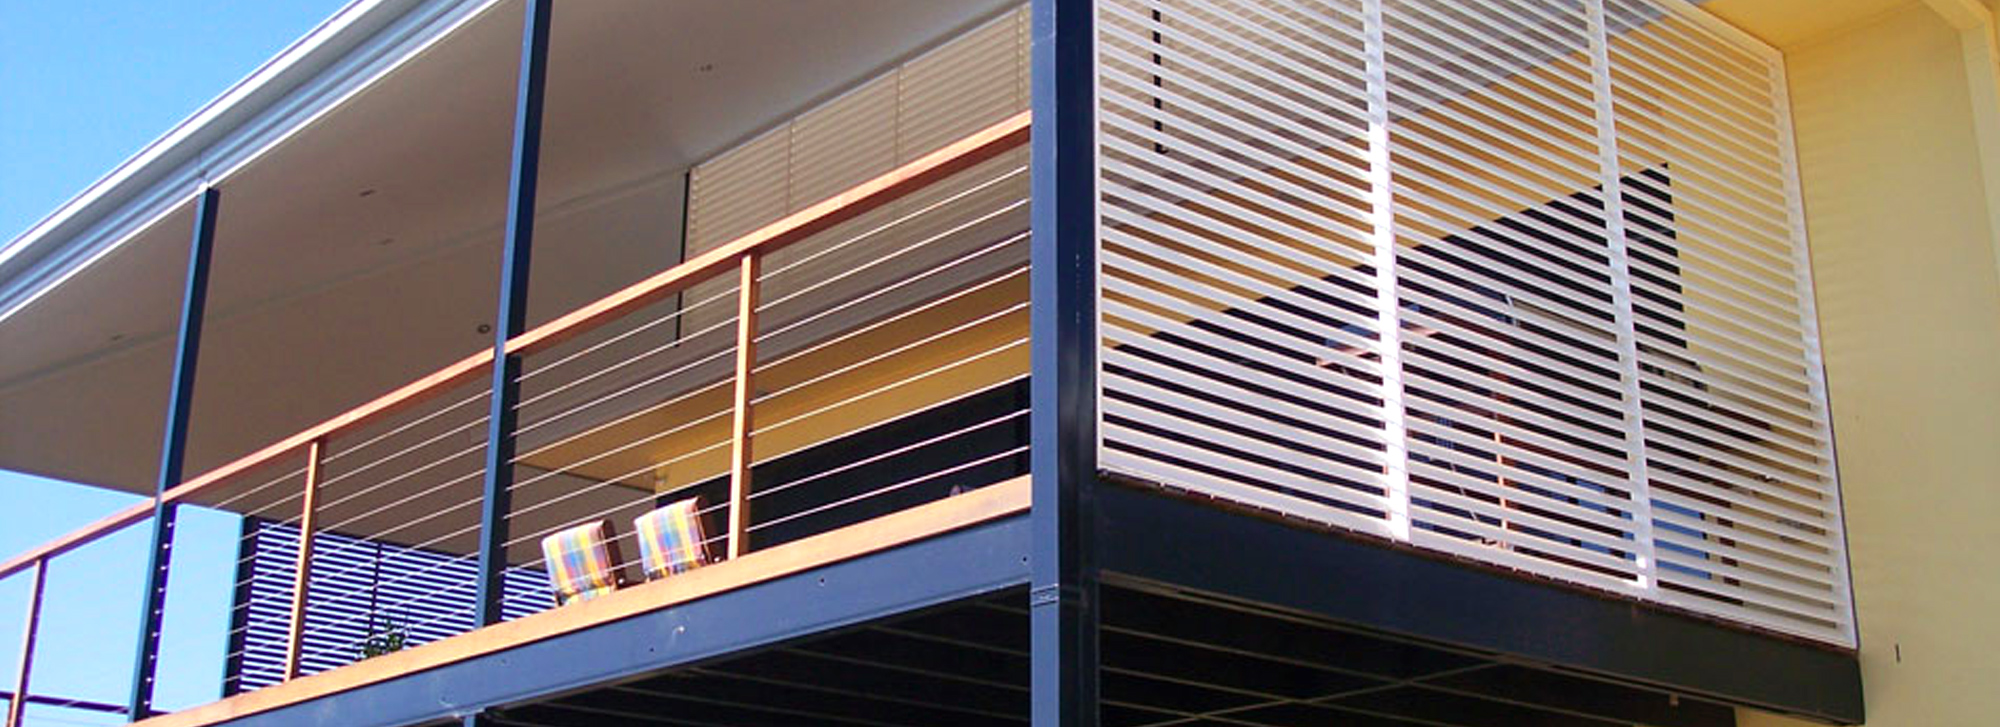 Stainless Wire Balustrades